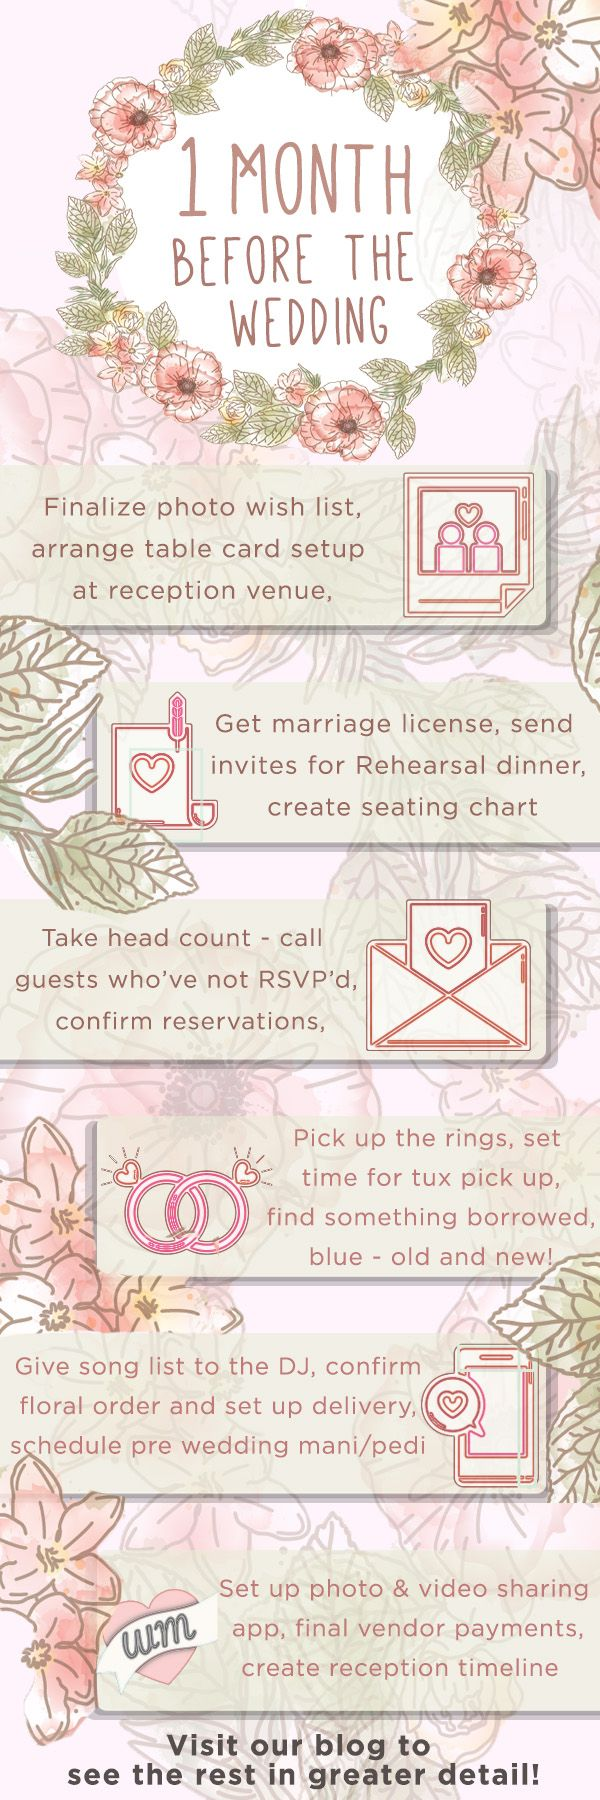 One month separates you from 'happily ever after' - can you believe it?  We've put together a checklist to keep you on track during this final wedding planning stretch!